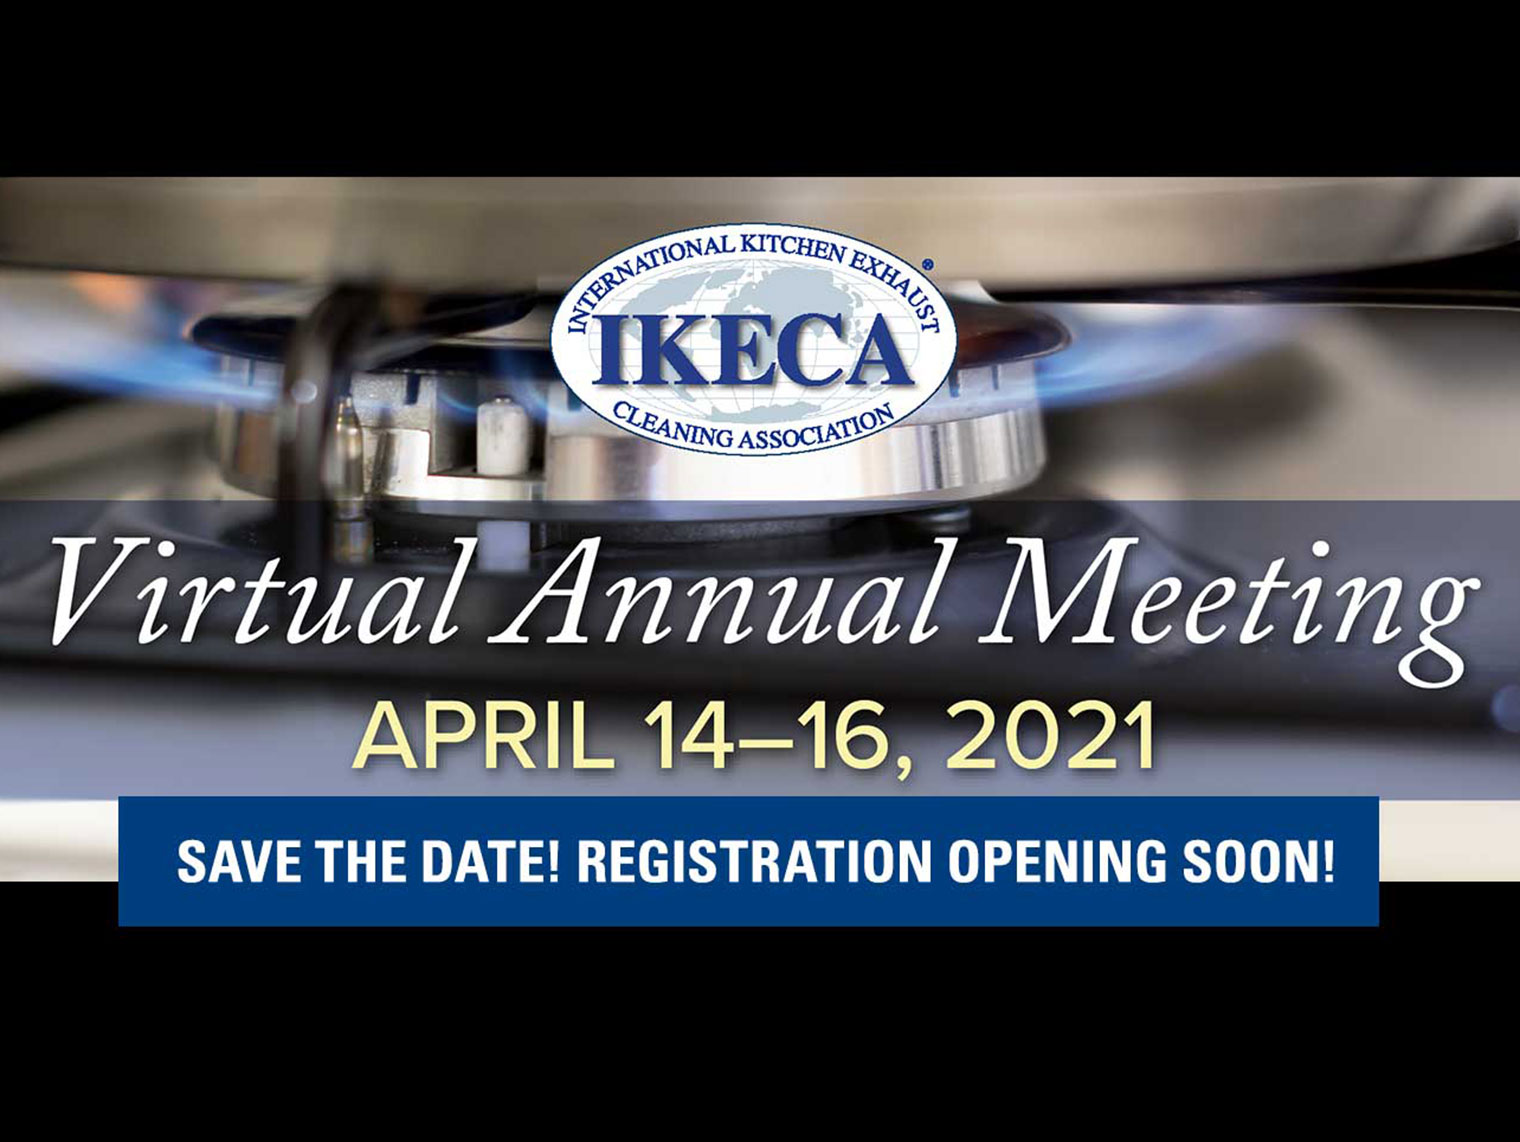 upcoming IKECA Event location